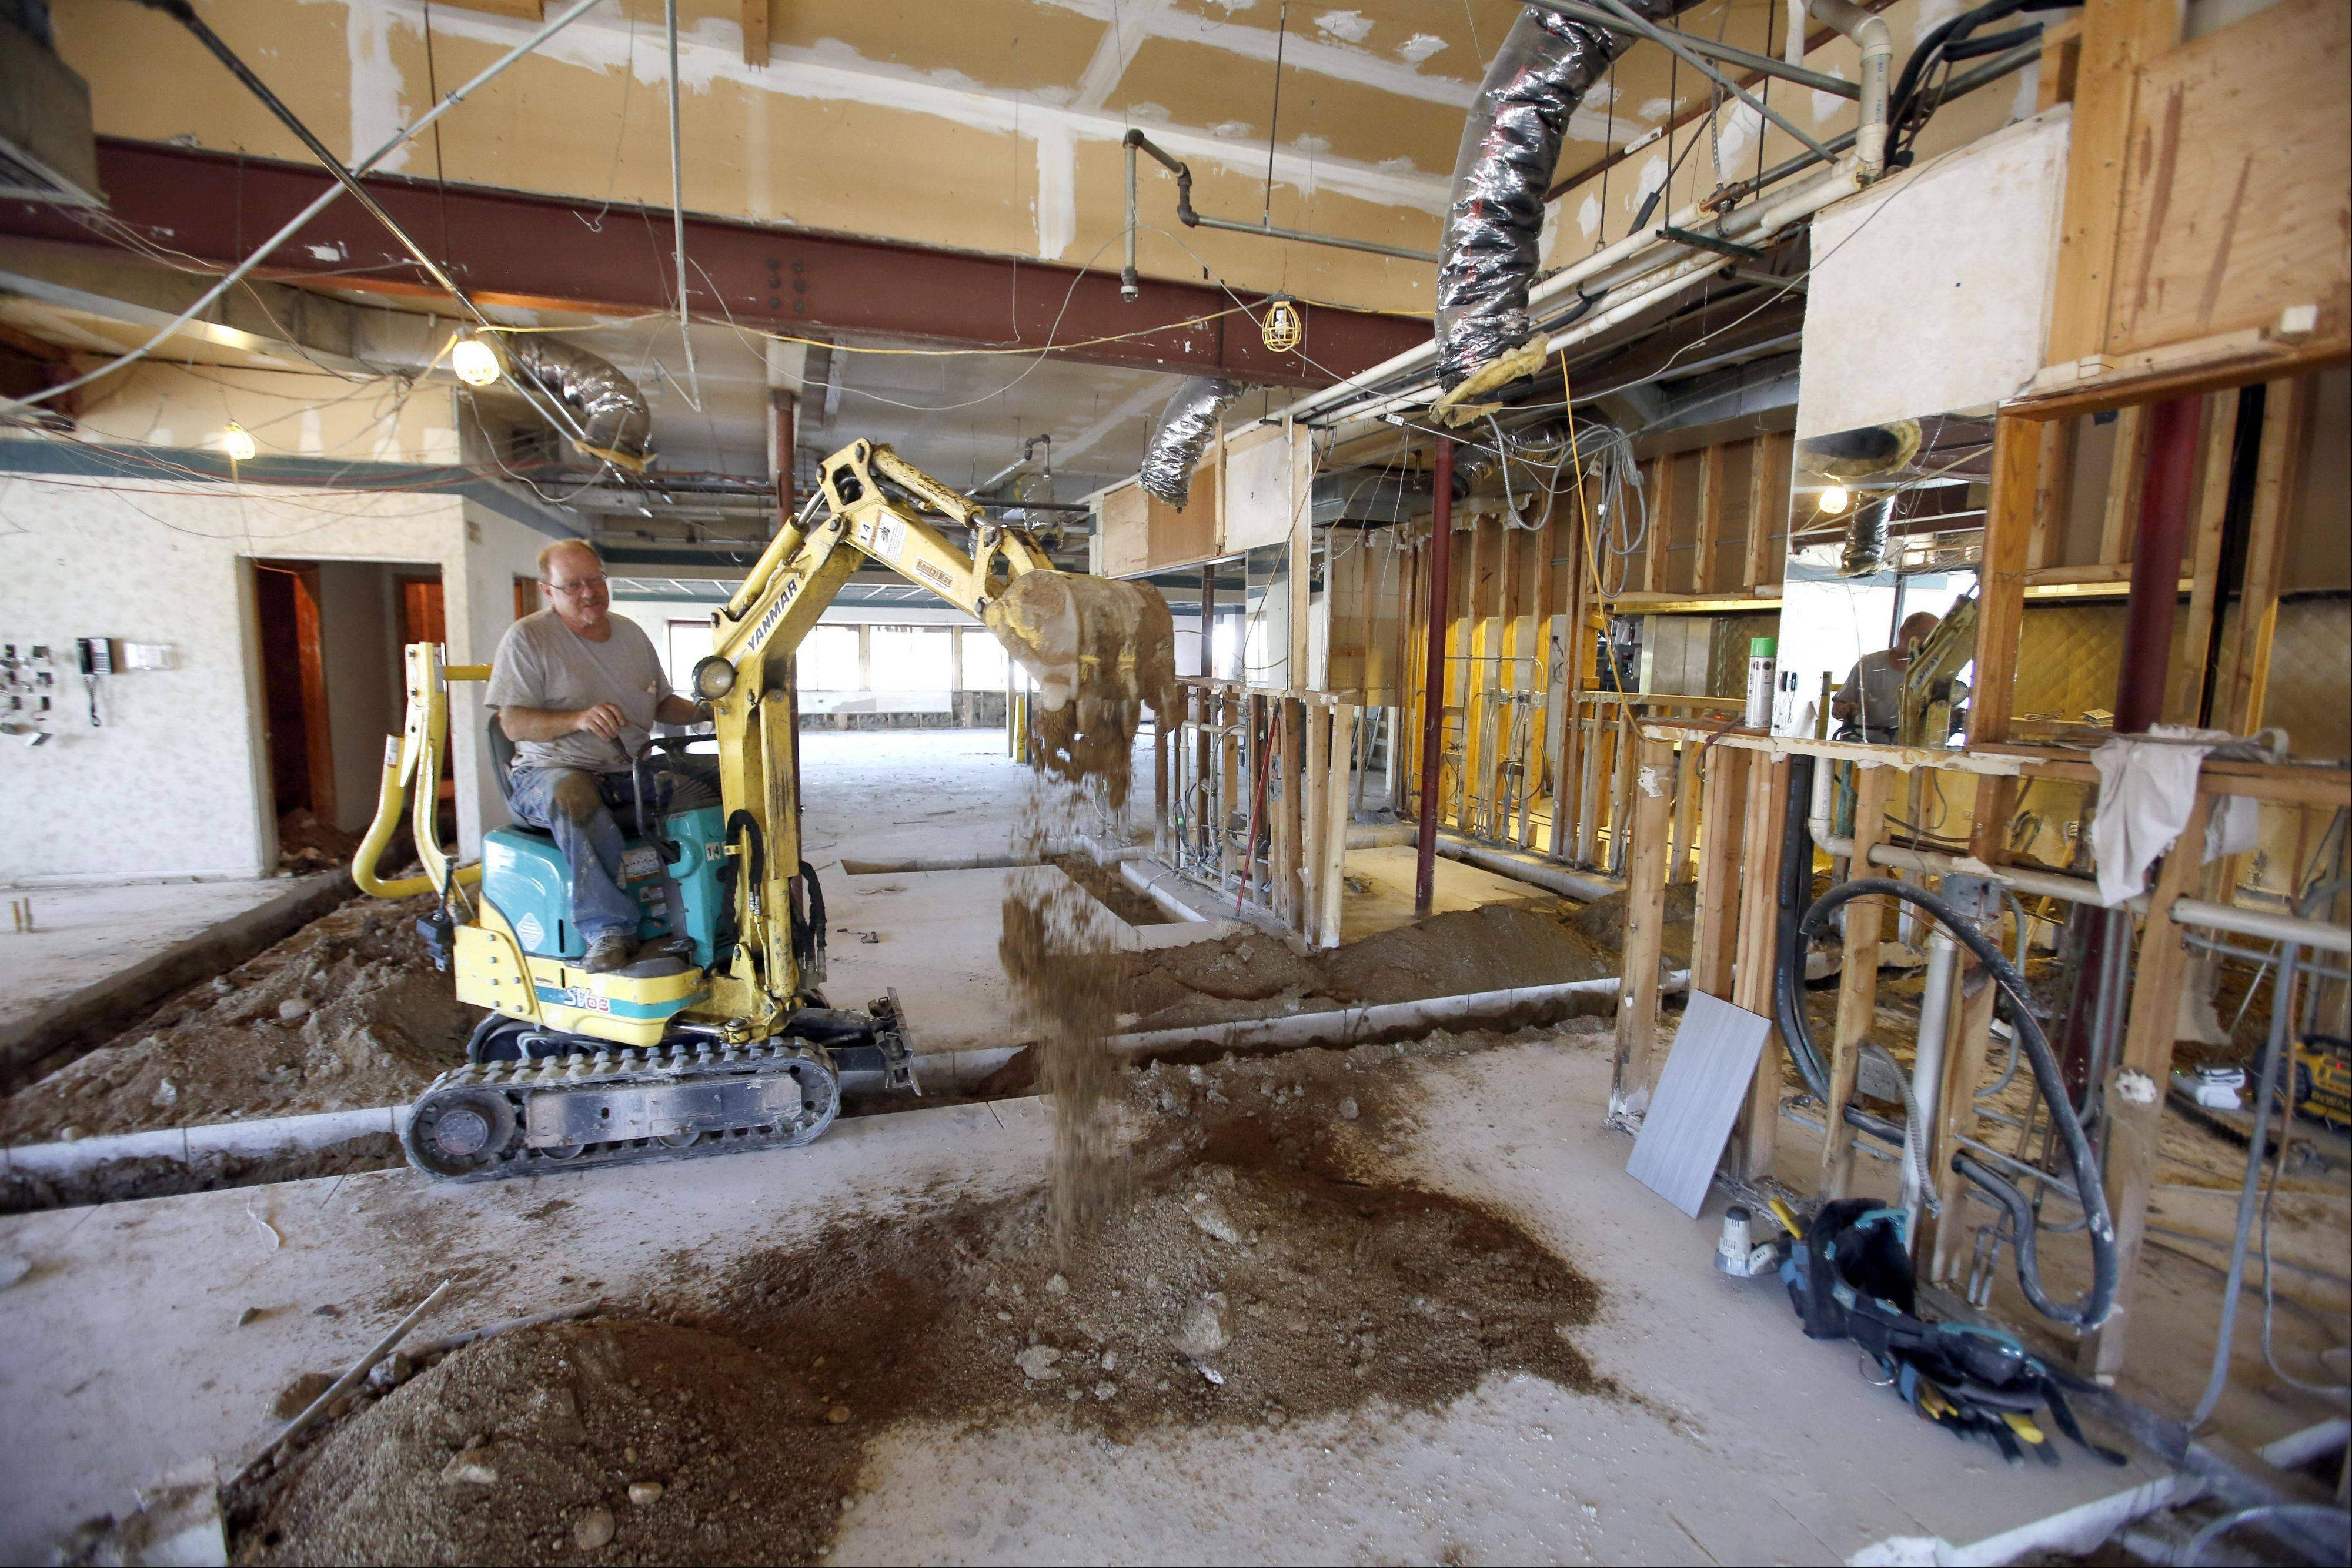 Joe Bero of Joe Bero and Son Plumbing & Piping in Elgin works on the interior of Alexander's restaurant last week. The eatery is renovating the interior and exterior, and the owners hope to be opened by December.